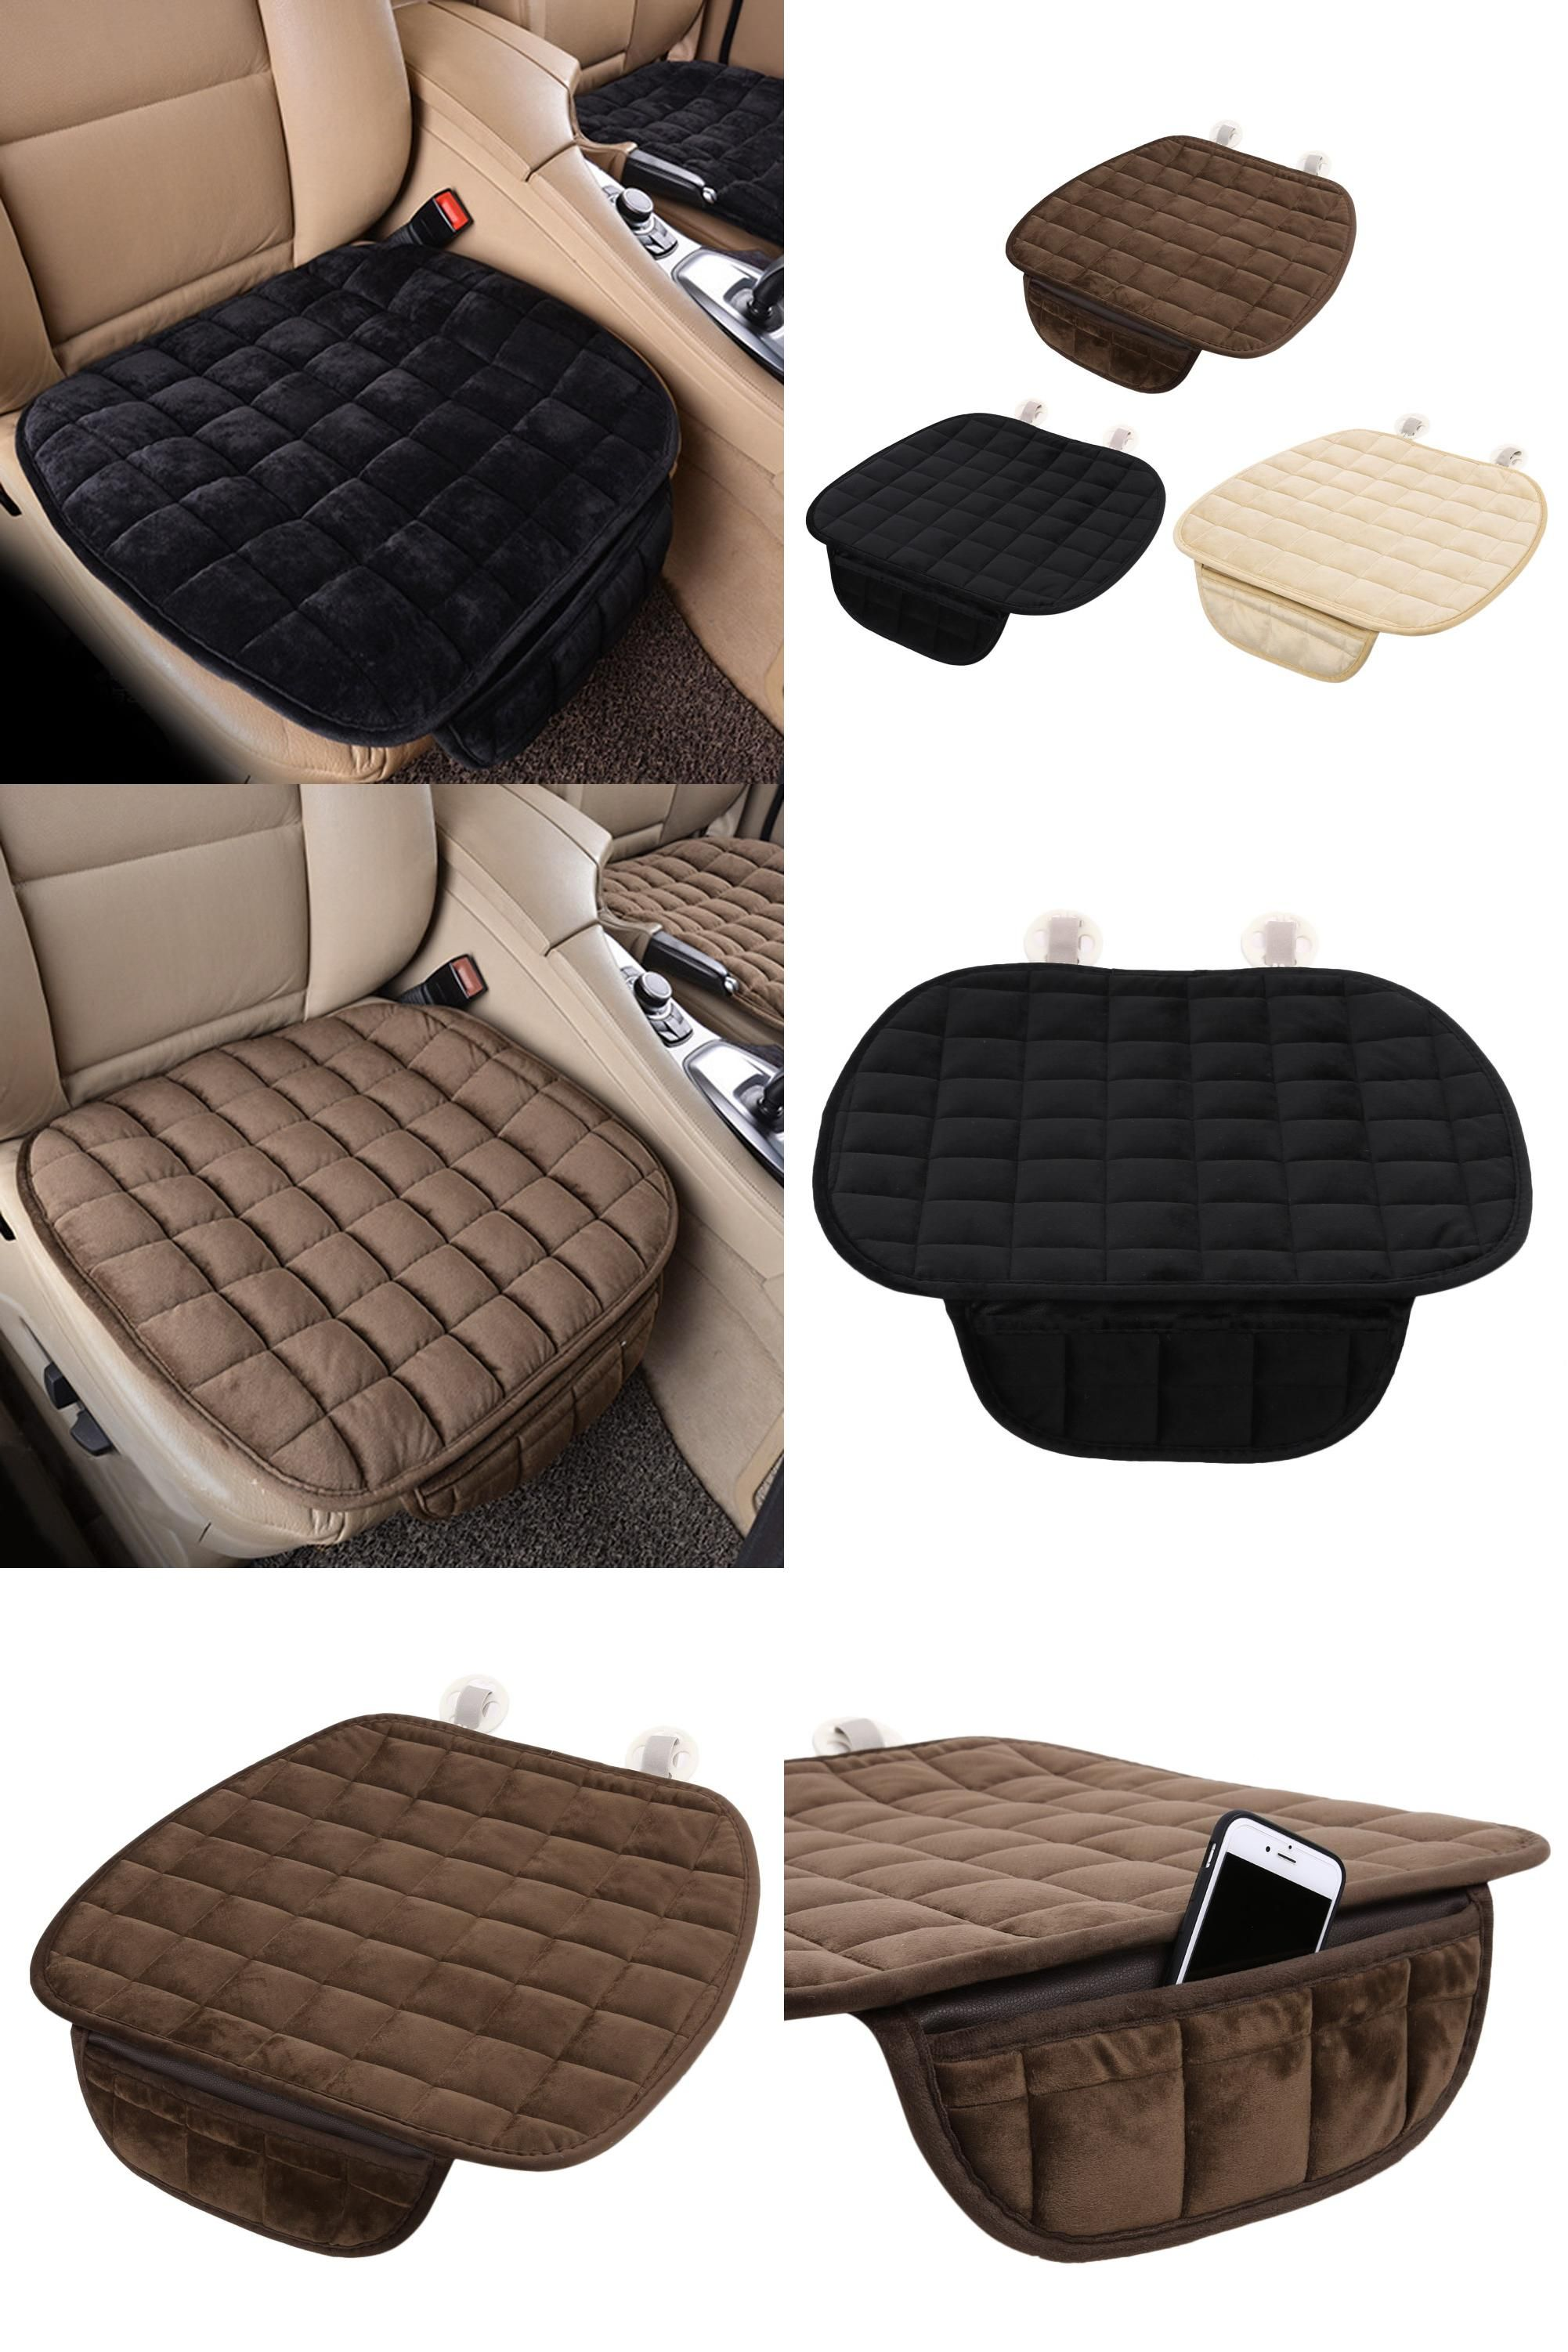 visit to buy universal car seat cover winter plush anti slip